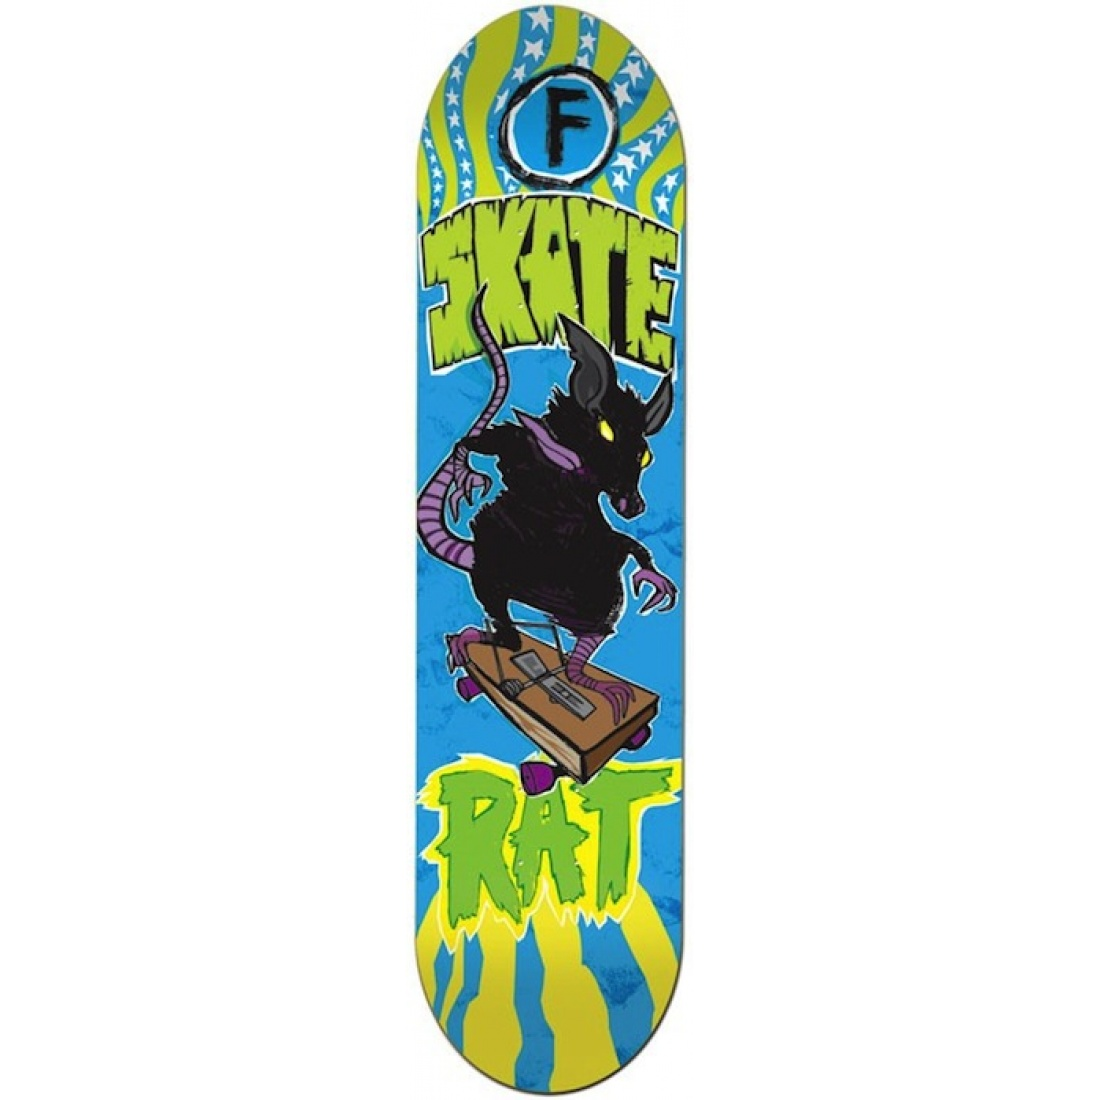 FS-Skate Rat 8.0 Deck